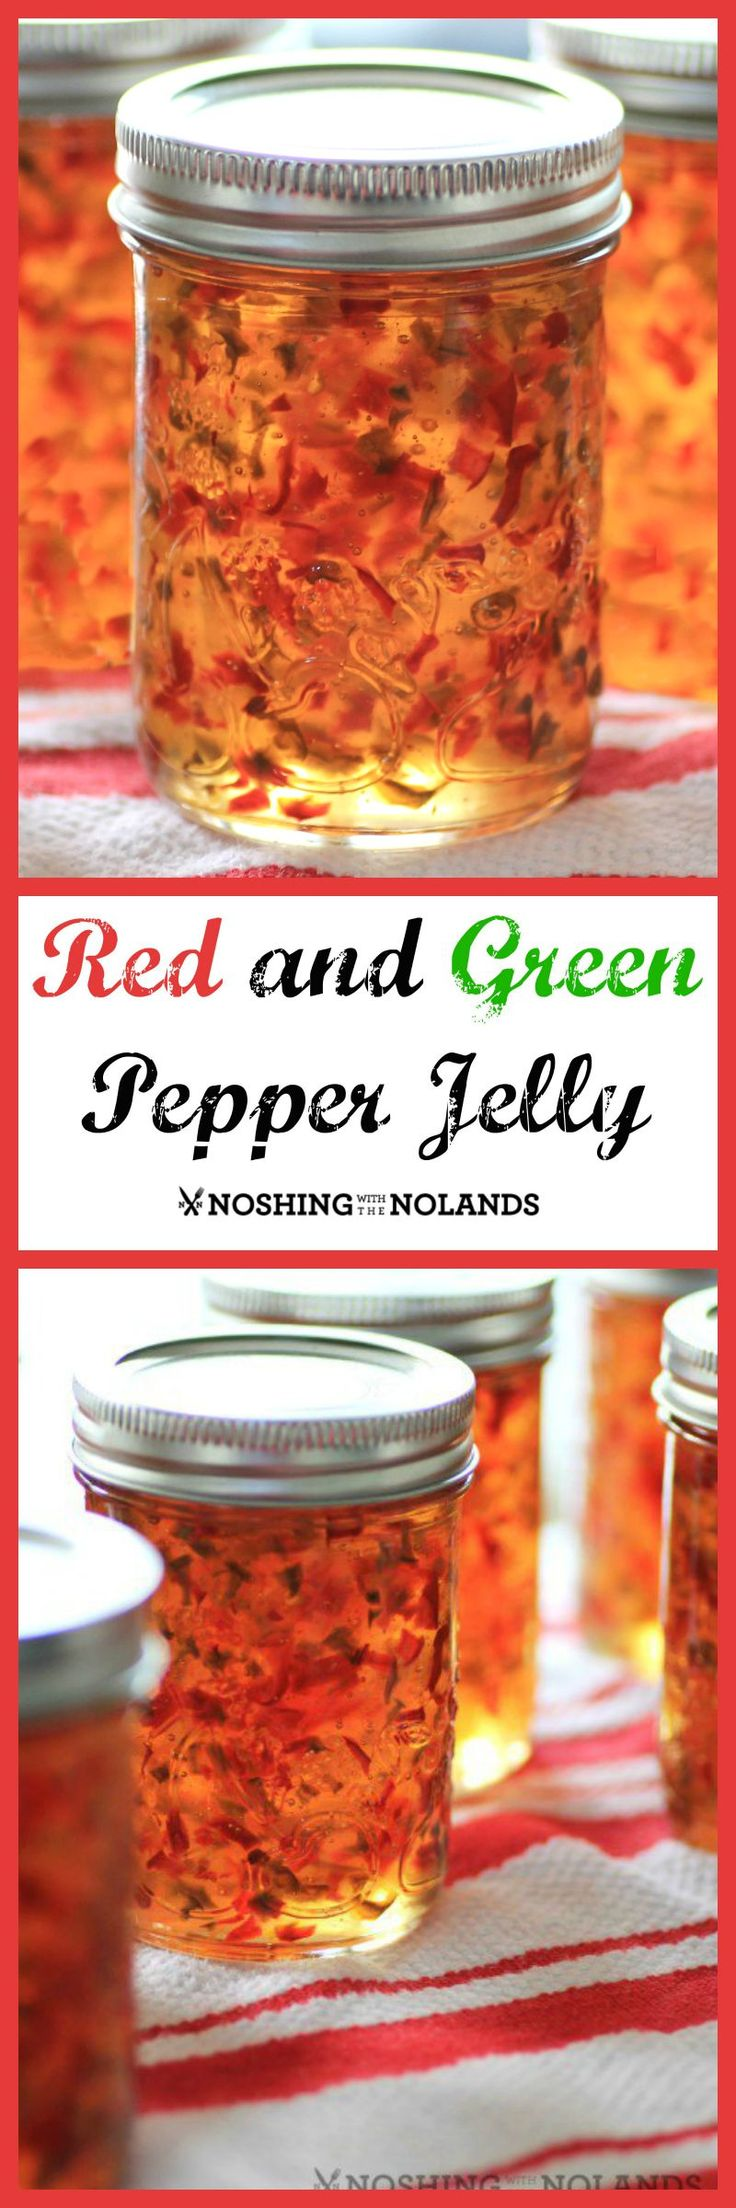 MWM - Red and Green Pepper Jelly by Noshing With The Nolands makes a great gift or enjoy at home. Spicy sweet and with cream cheese makes an easy appetizer.: